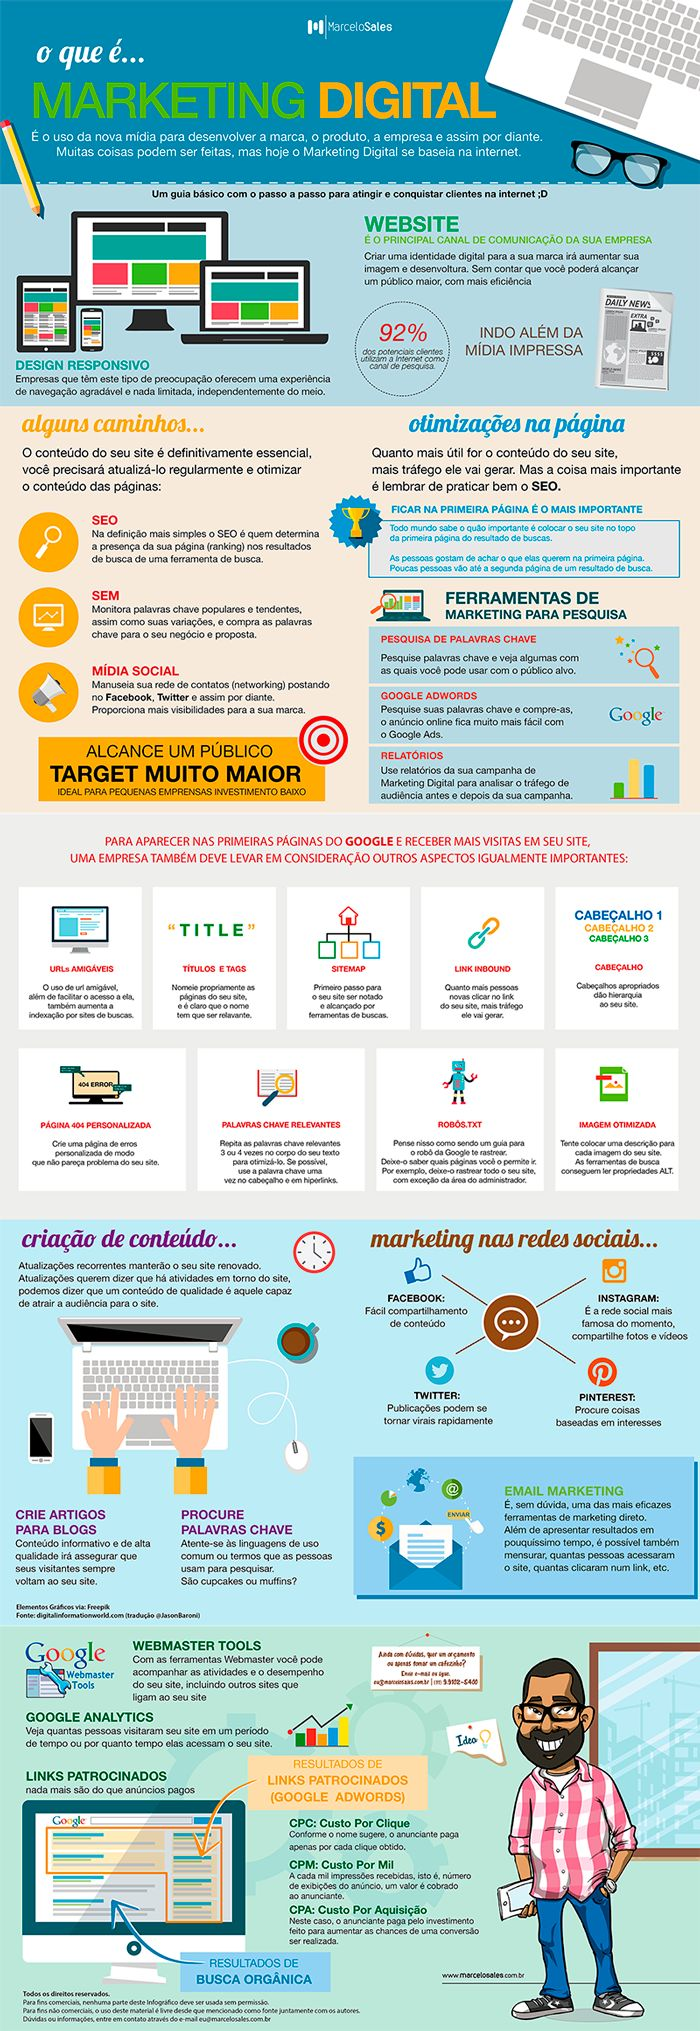 O que é marketing digital  #marketingdigital #infograficos #brasil #modernistablog